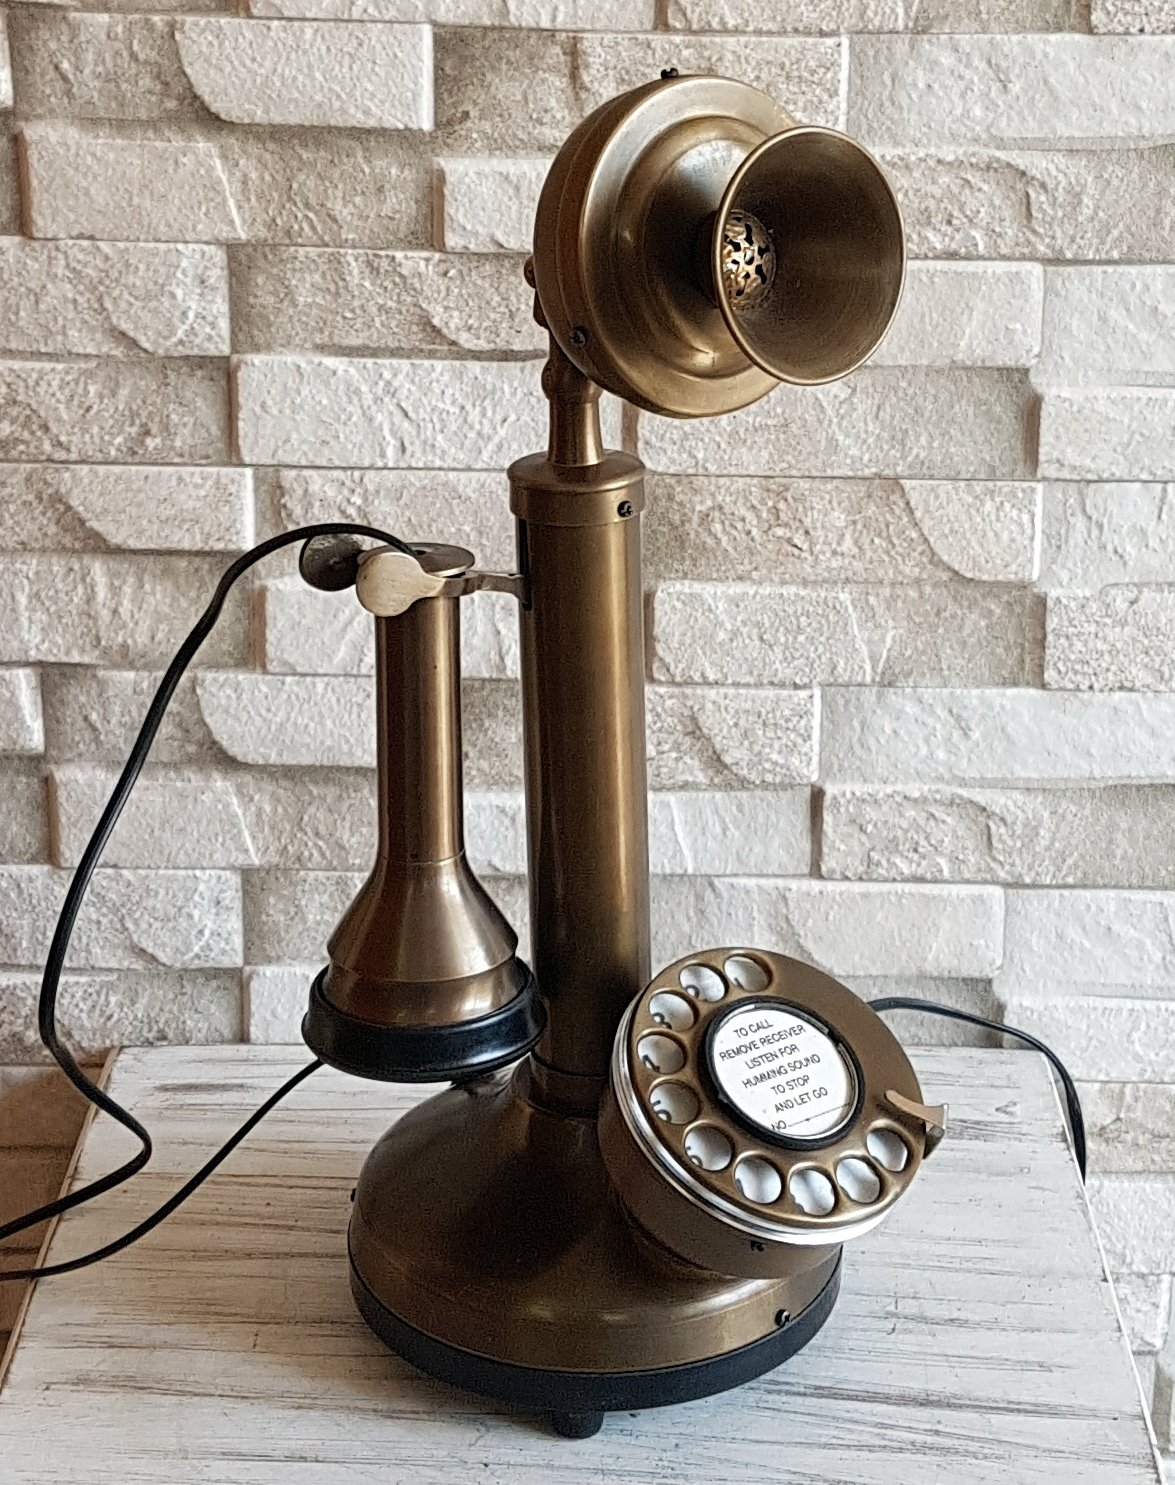 House Of Antiques Vintage Style Rotery Dial Candlestick Functional Decorative Brass Telephone.